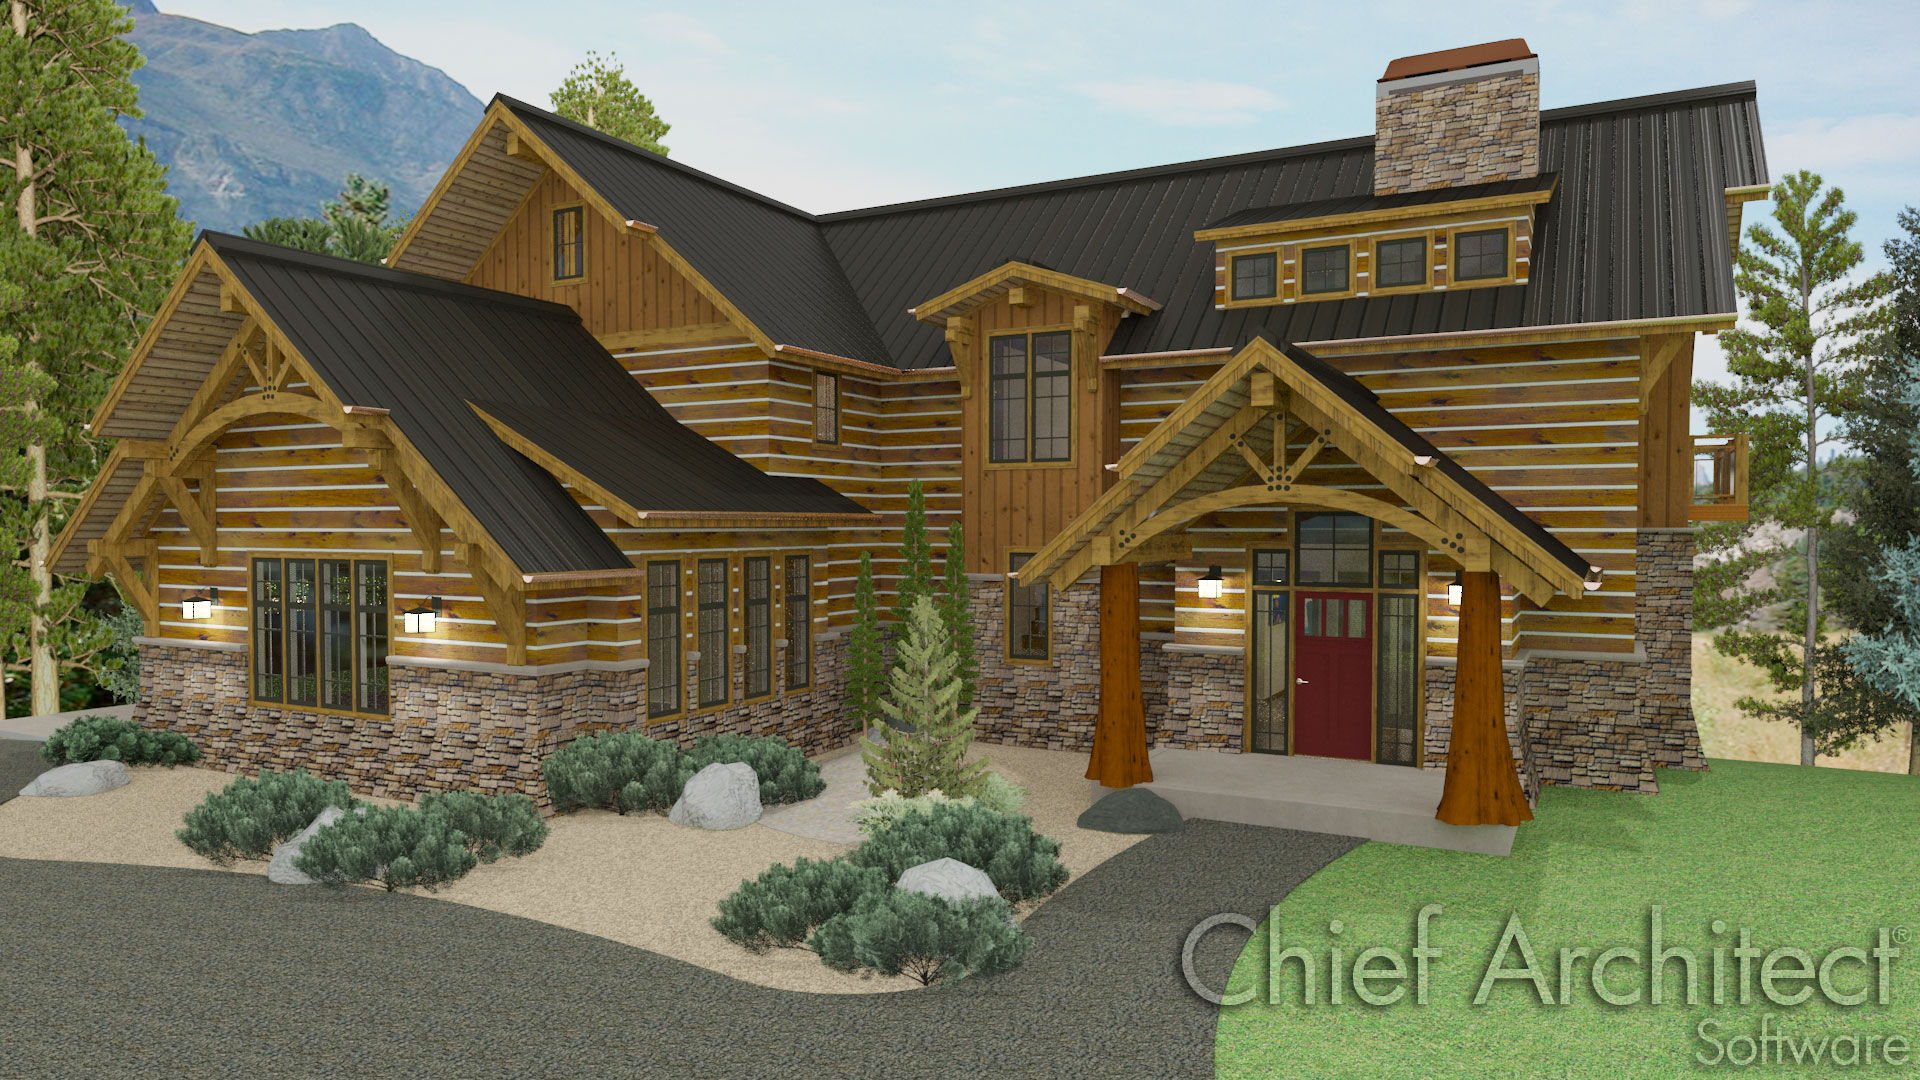 On Timber Frame Construction In The Form Of A Classic Mountain Home With Shed Dormer Prow Roof Overhangs Custom Trusses Log Siding Chinking